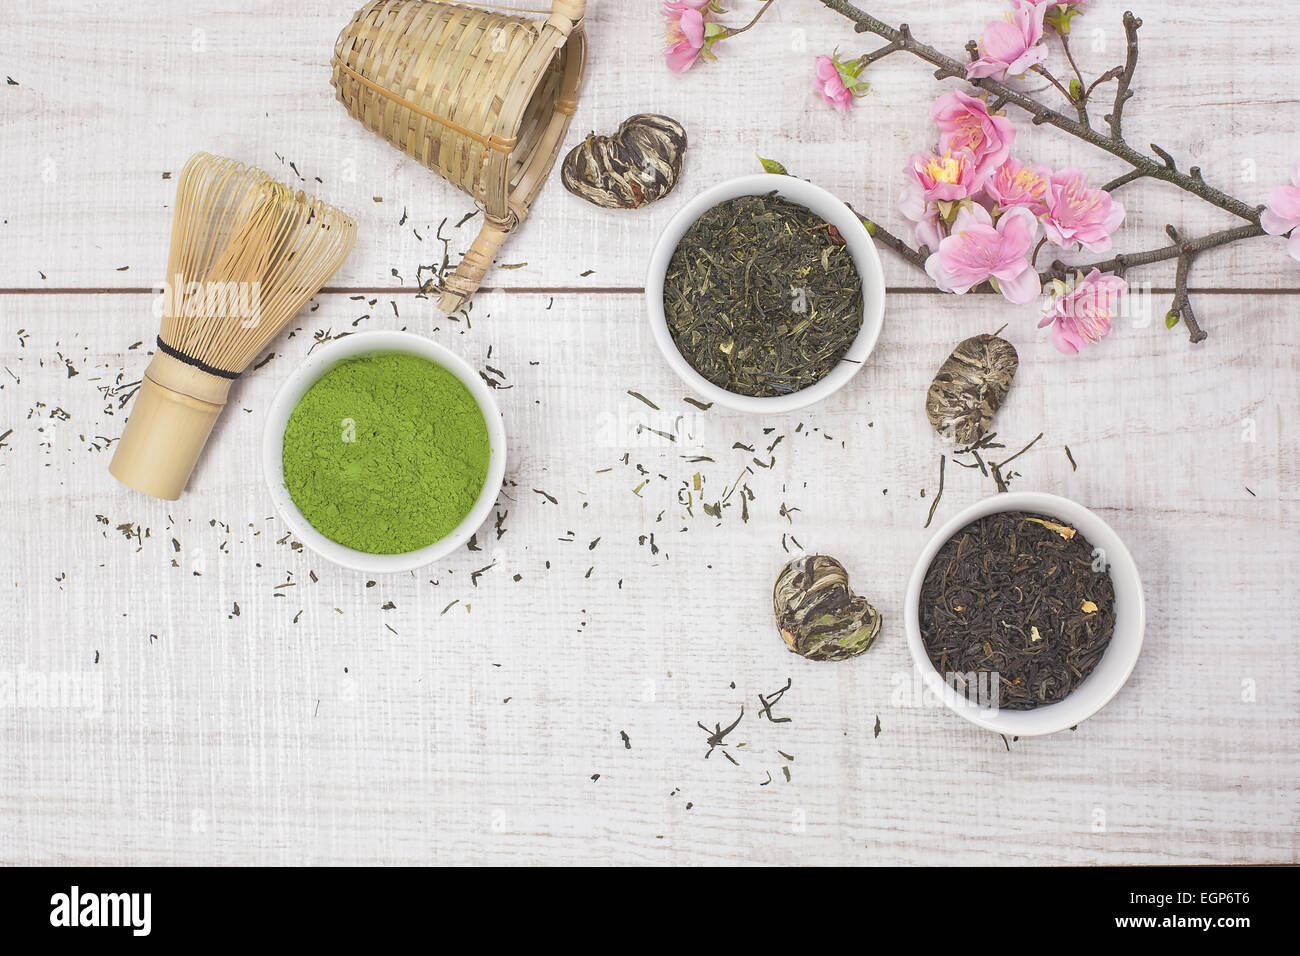 Green Tea Different Types Of Japanese Green Tea Leaves And Powder